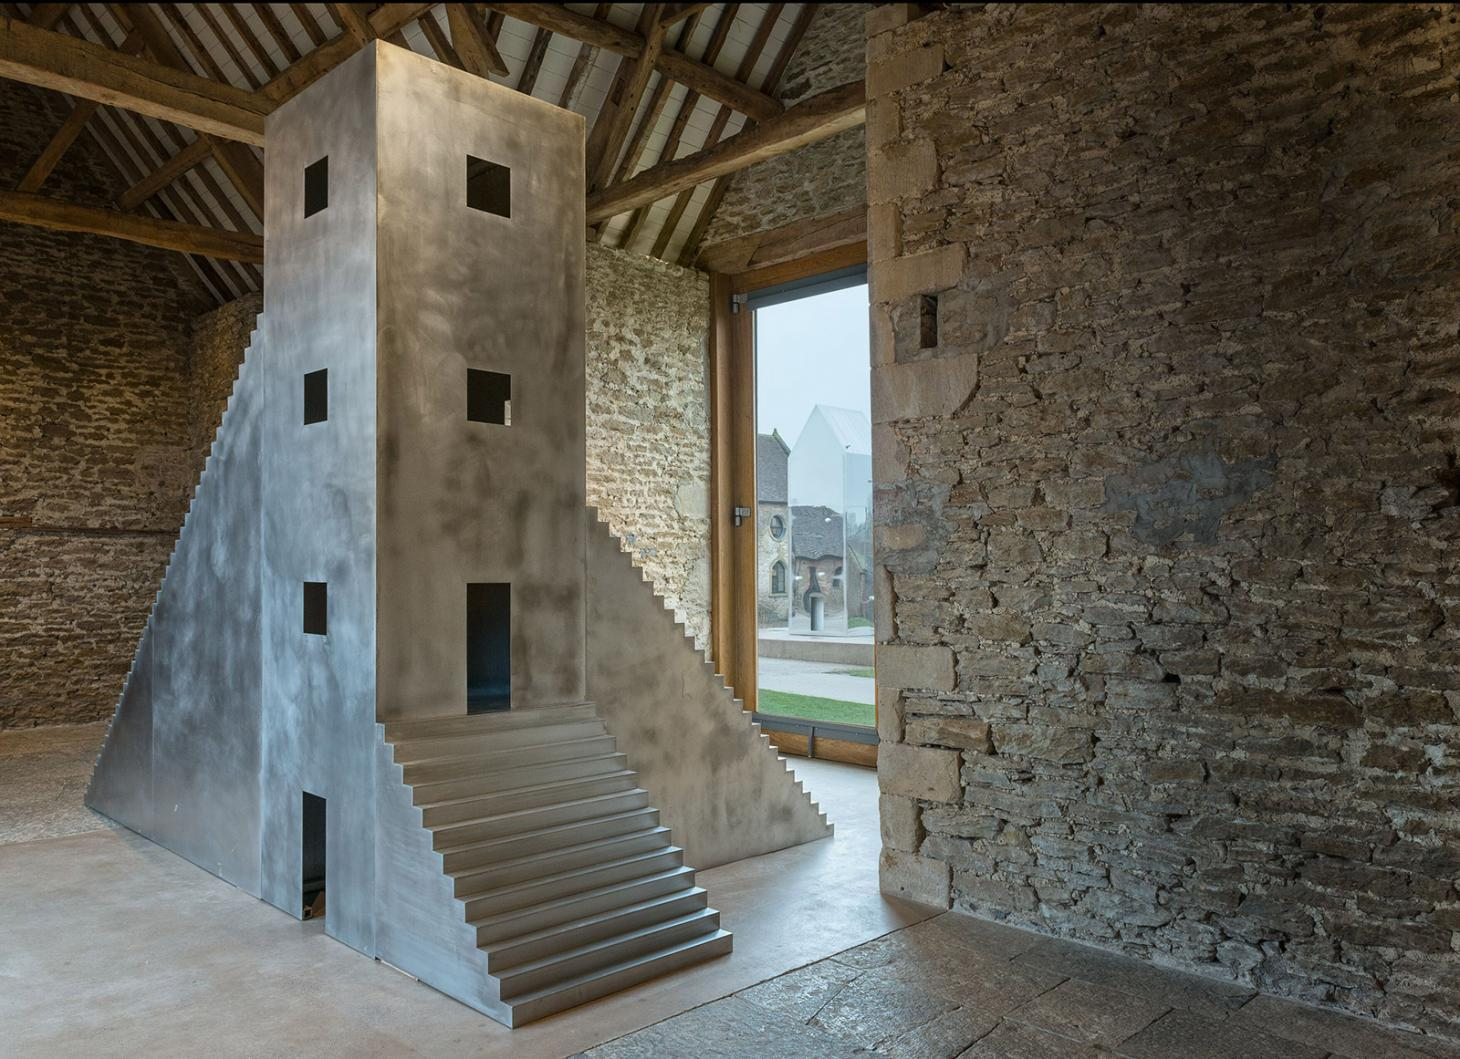 House to Watch the Sunset by Not Vital at Hauser & Wirth Somerset